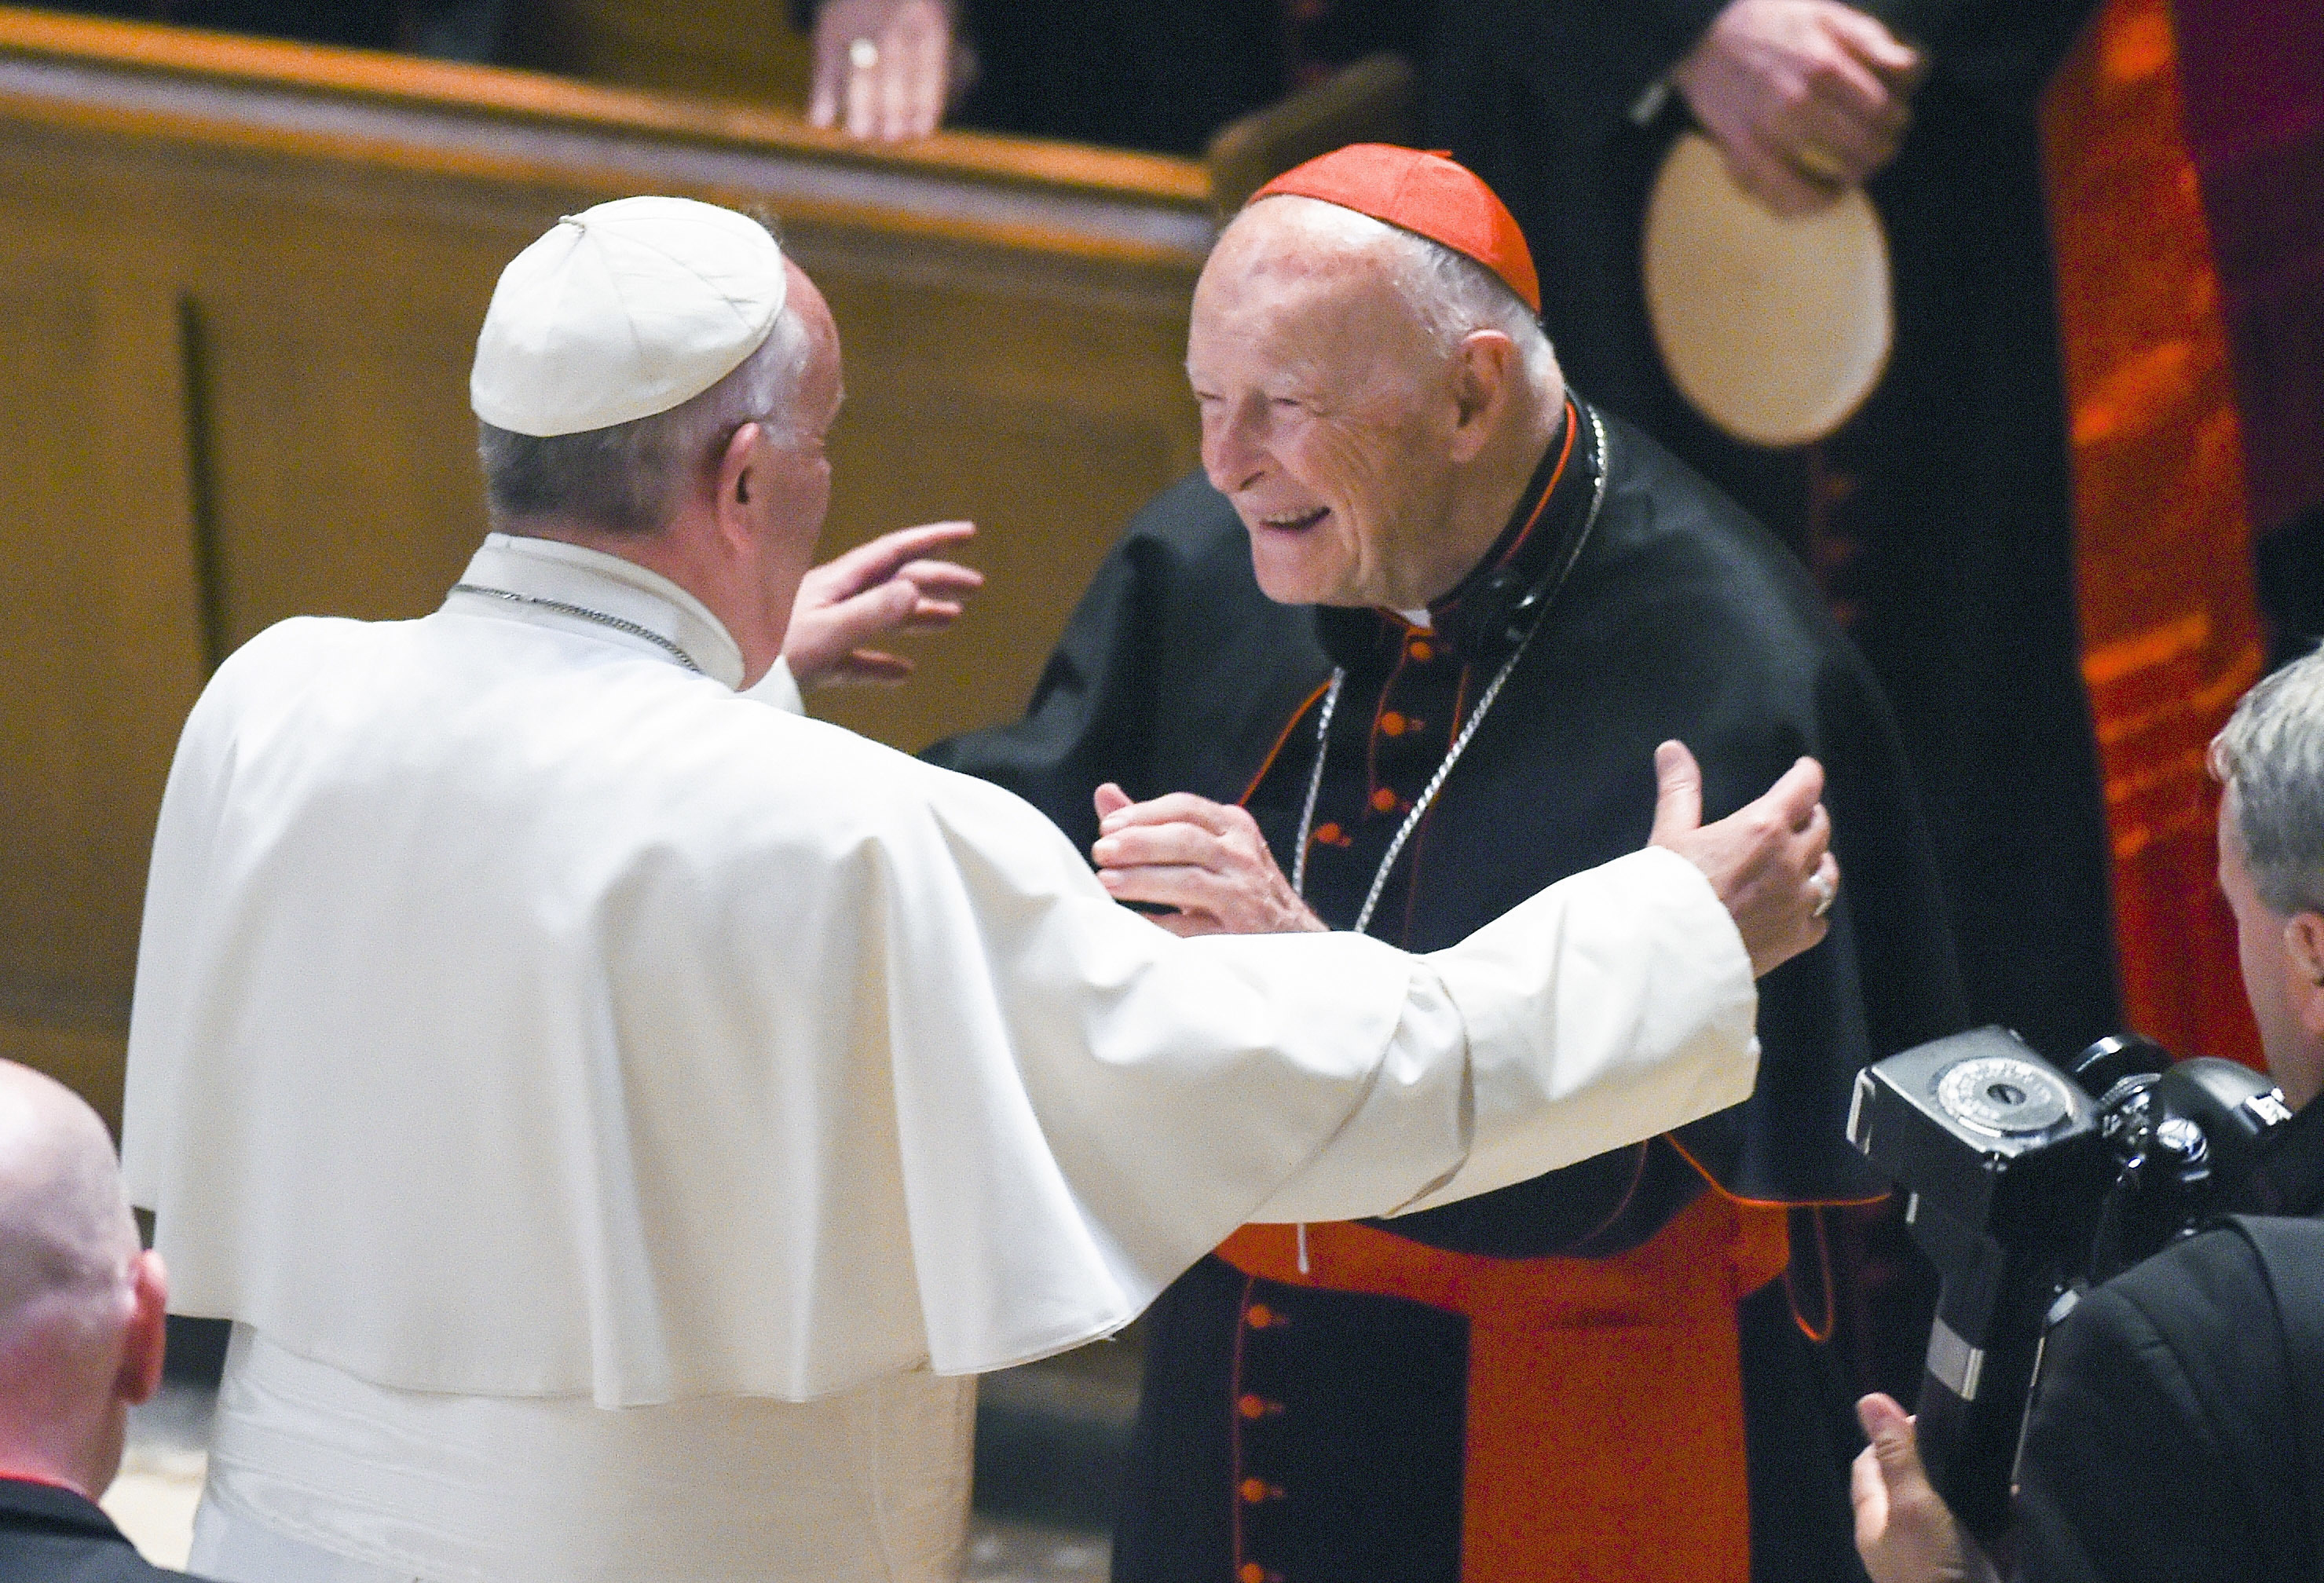 Cardinal Wuerl: Protector of the flock or facilitator of